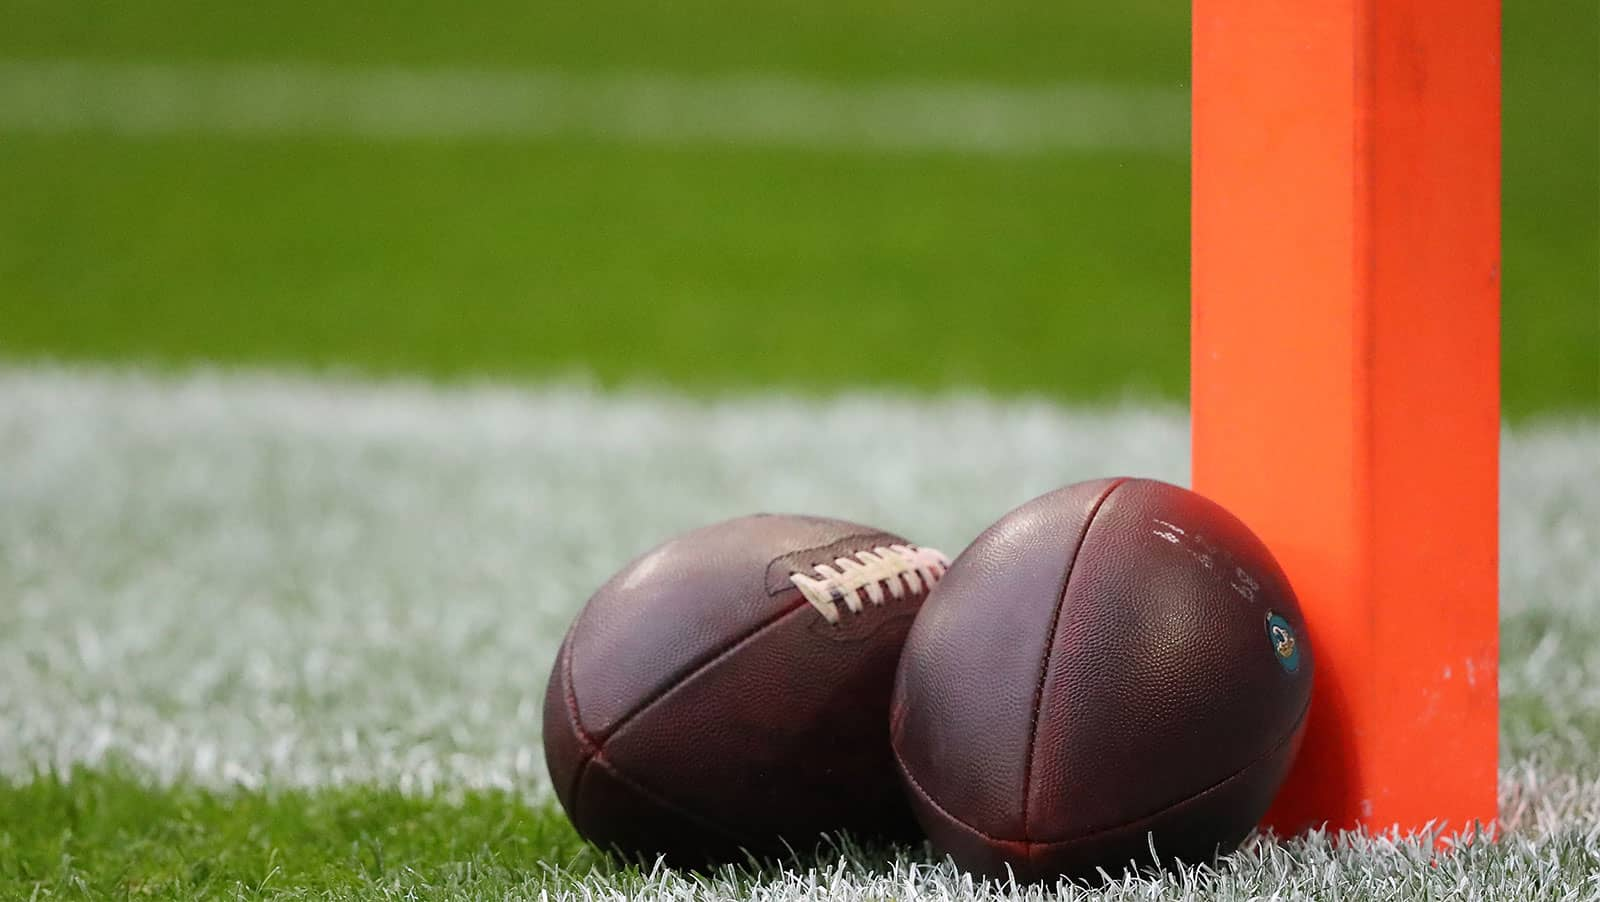 nfl-divisional-playoffs-saturday-odds-trends-min